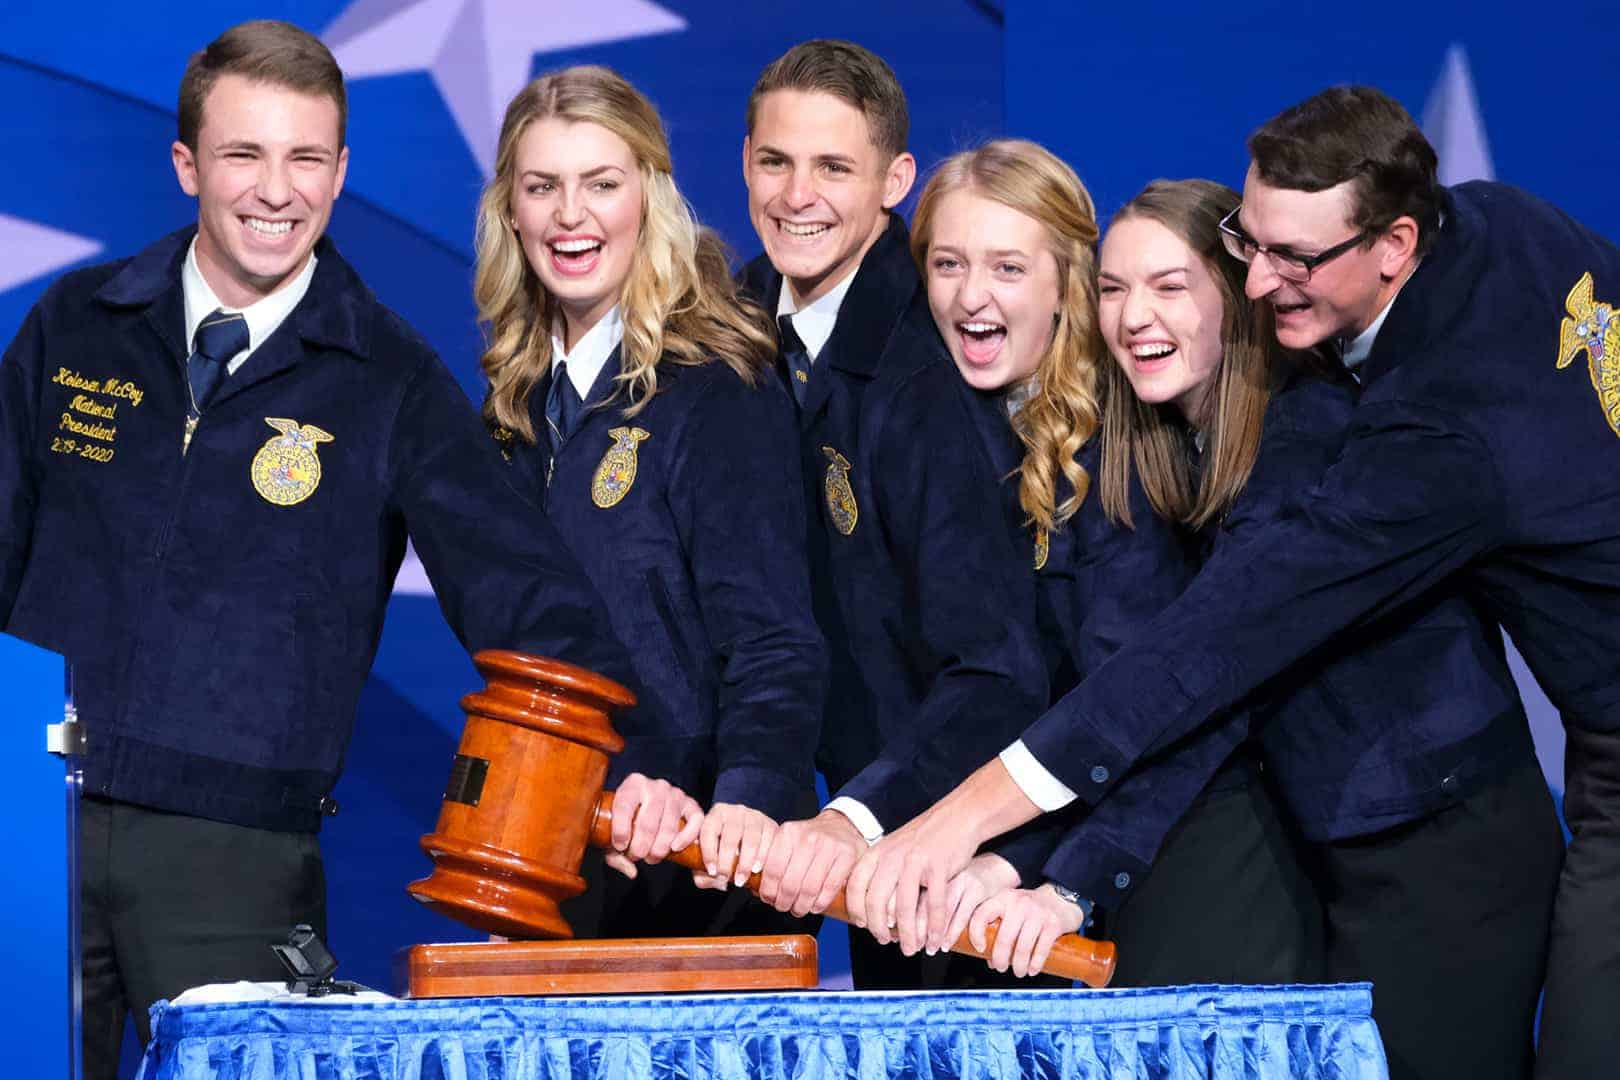 2019-20 National FFA Officer Team Elected